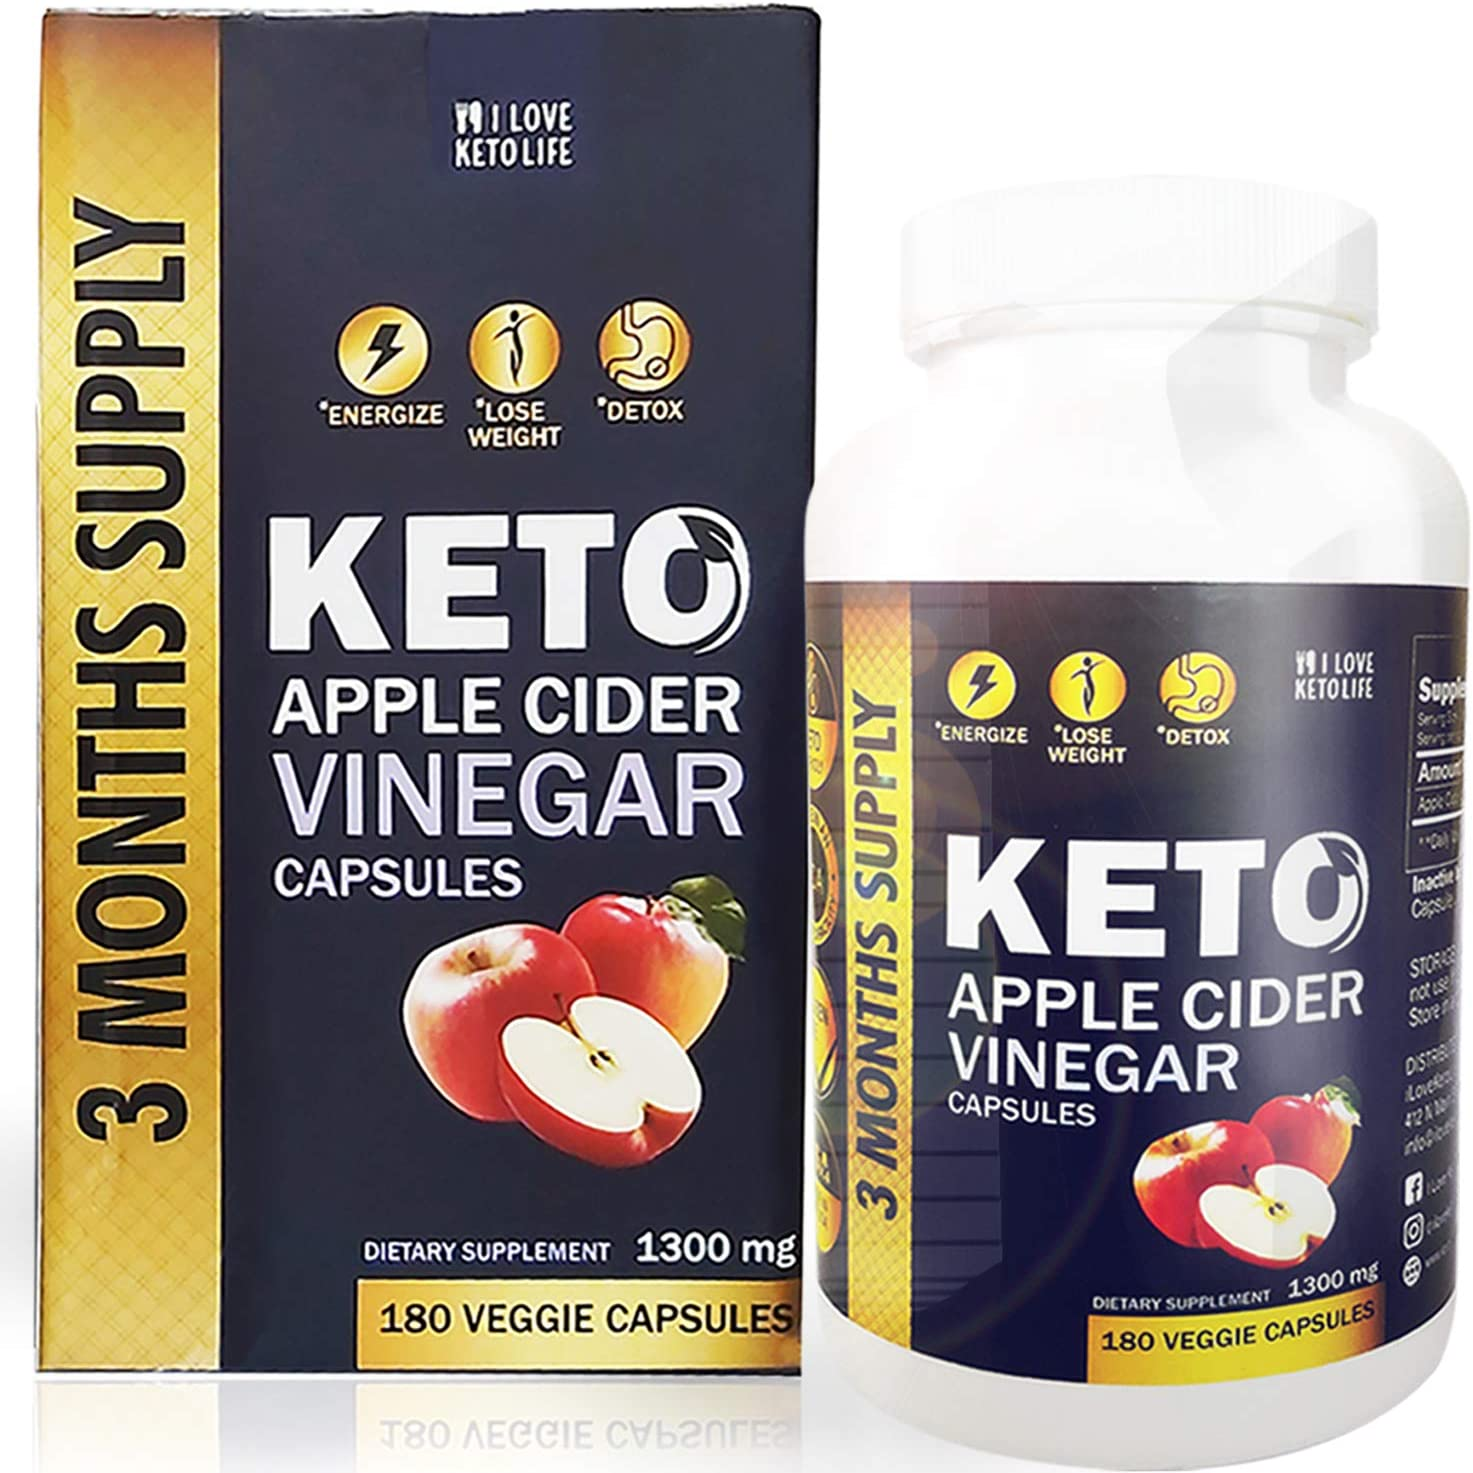 180 Capsules Extra Potent, Pure and Natural Keto Apple Cider Vinegar Capsules with Mother for Weight Loss - Made from Raw Organic ACV   180 Capsules   1300 Milligrams